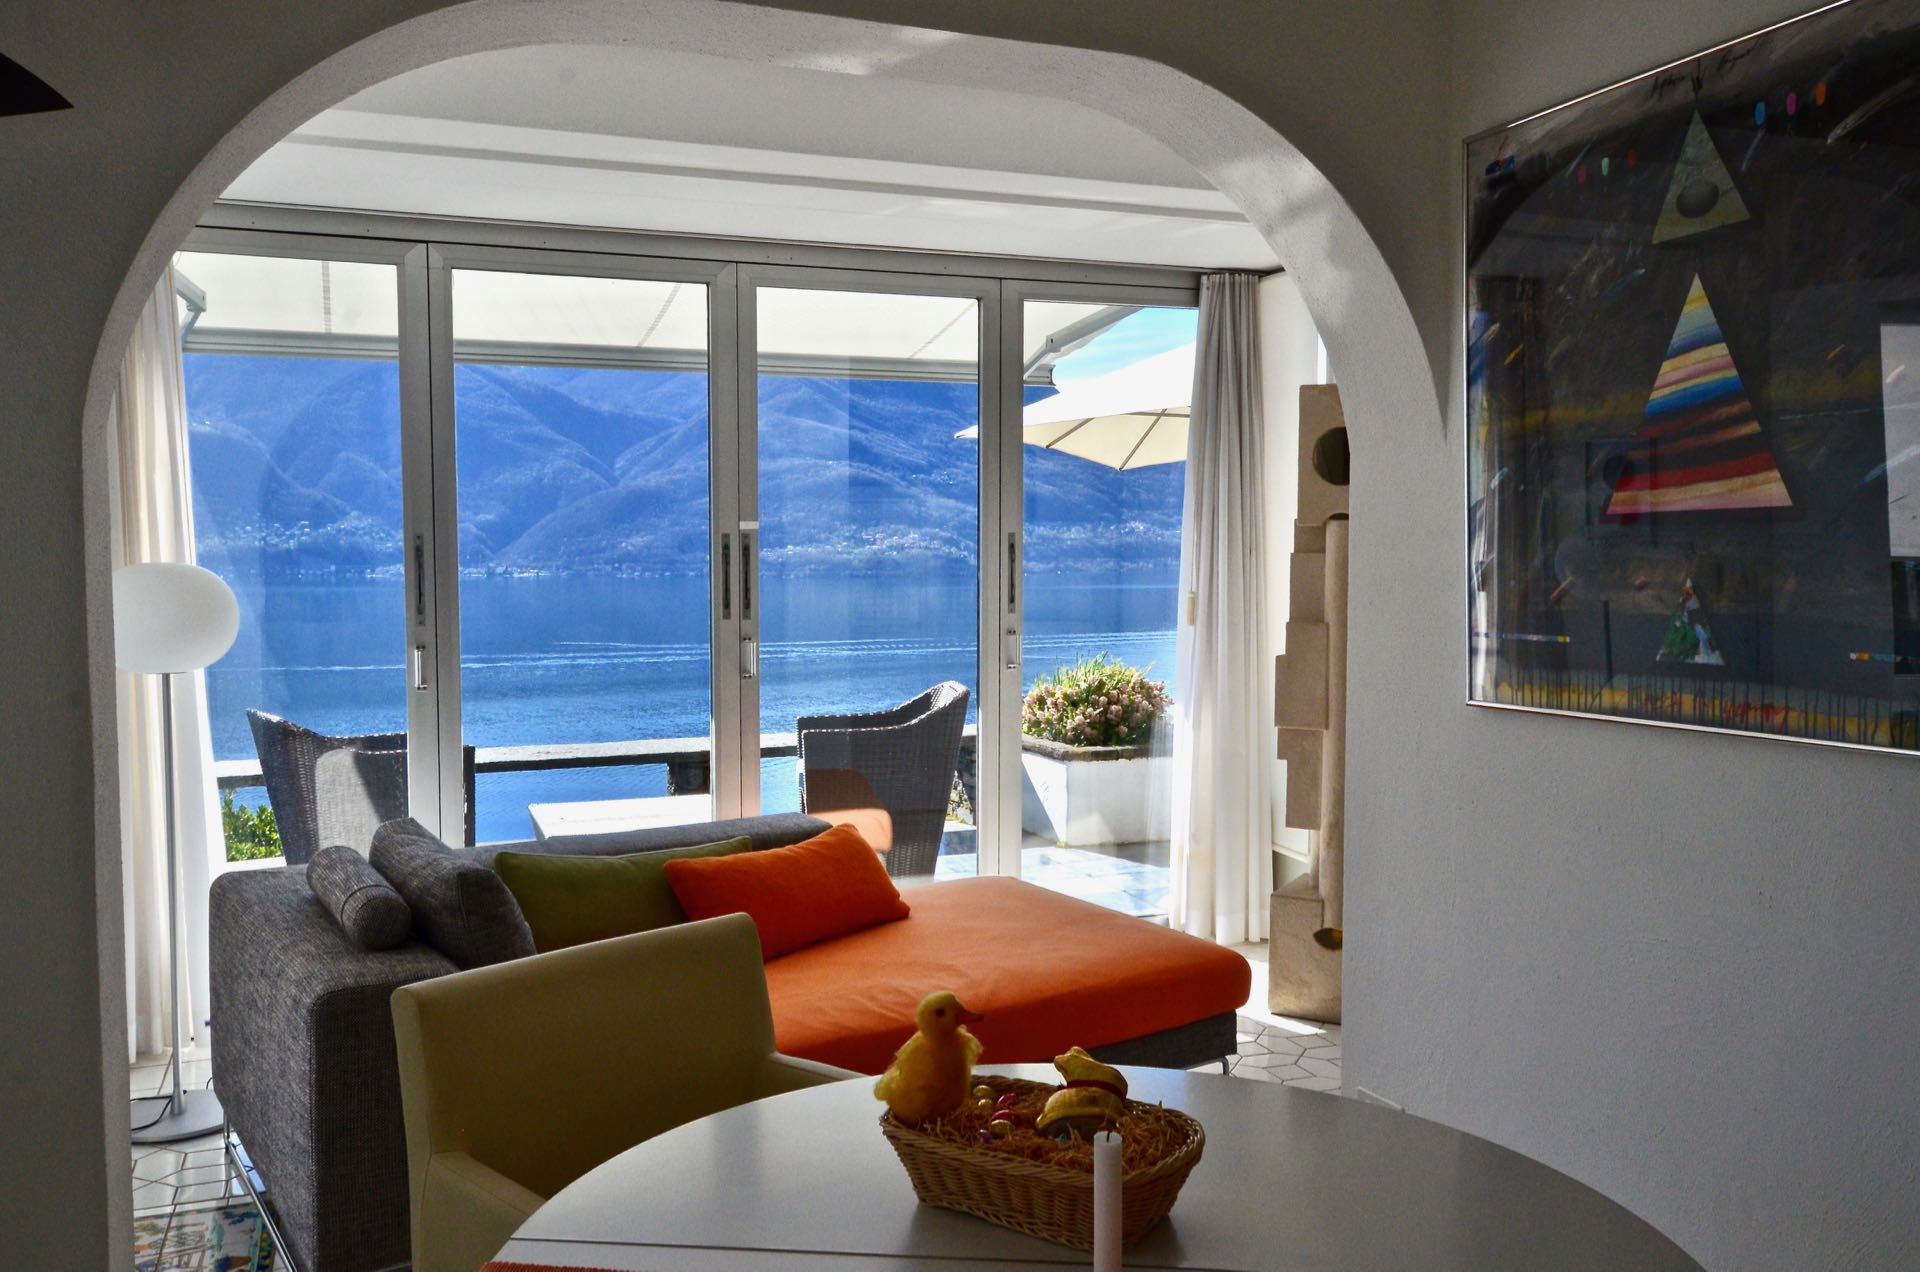 Living room with Lake Maggiore view, Switzerland - Building land for sale